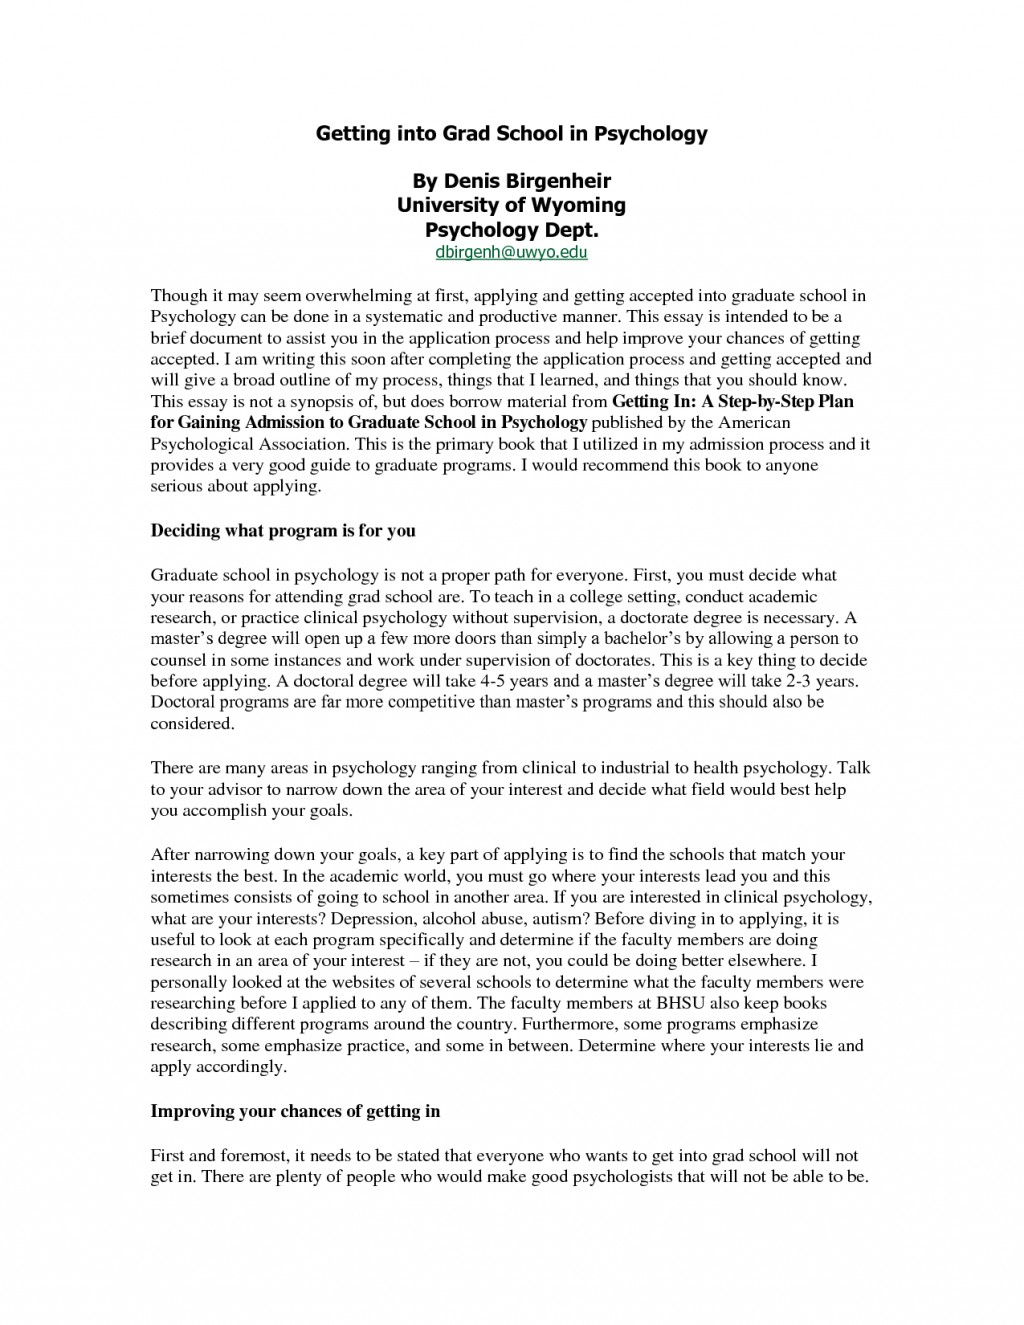 002 Graduation Essay Ydsmbeywi2 Excellent Sample High School Essays For 8th Grade Large